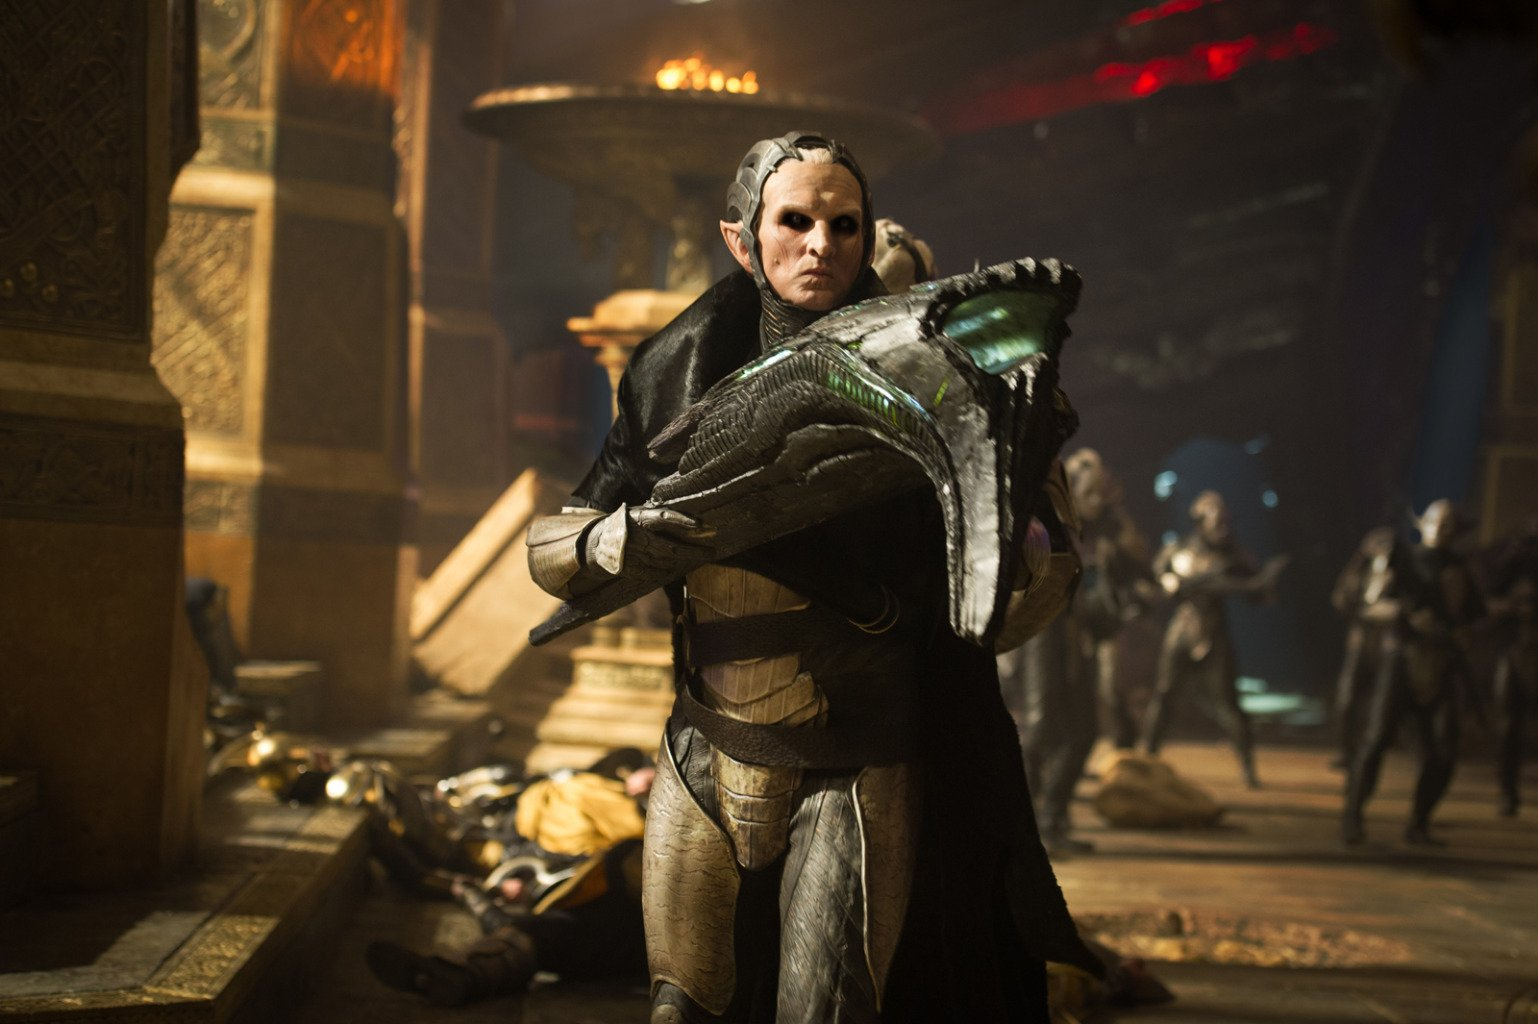 Christopher Eccleston as Malekith in Thor: The Dark World (2013)